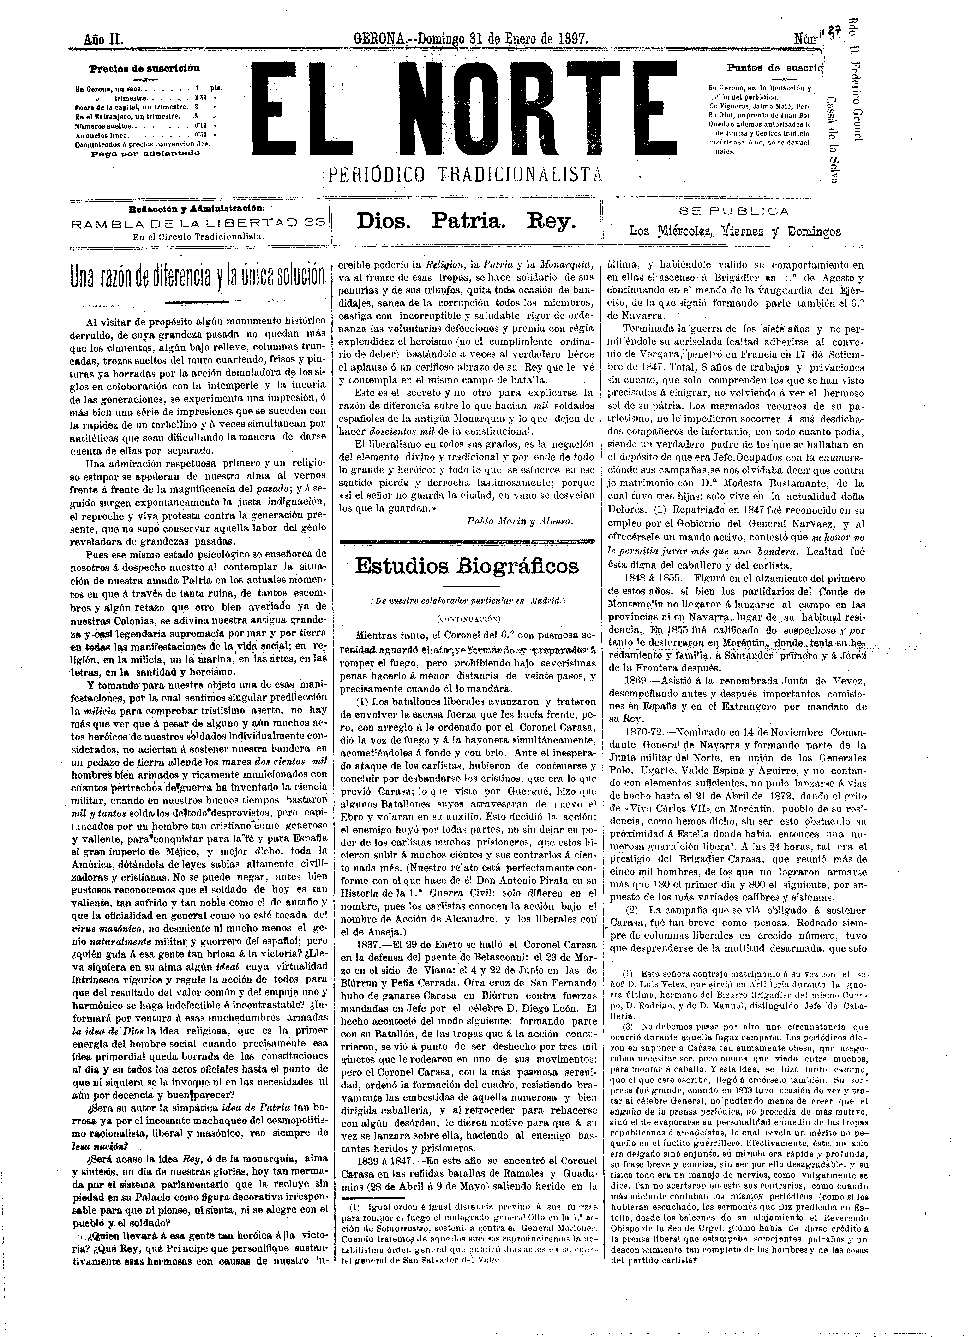 Norte, El. 31/1/1897. [Issue]